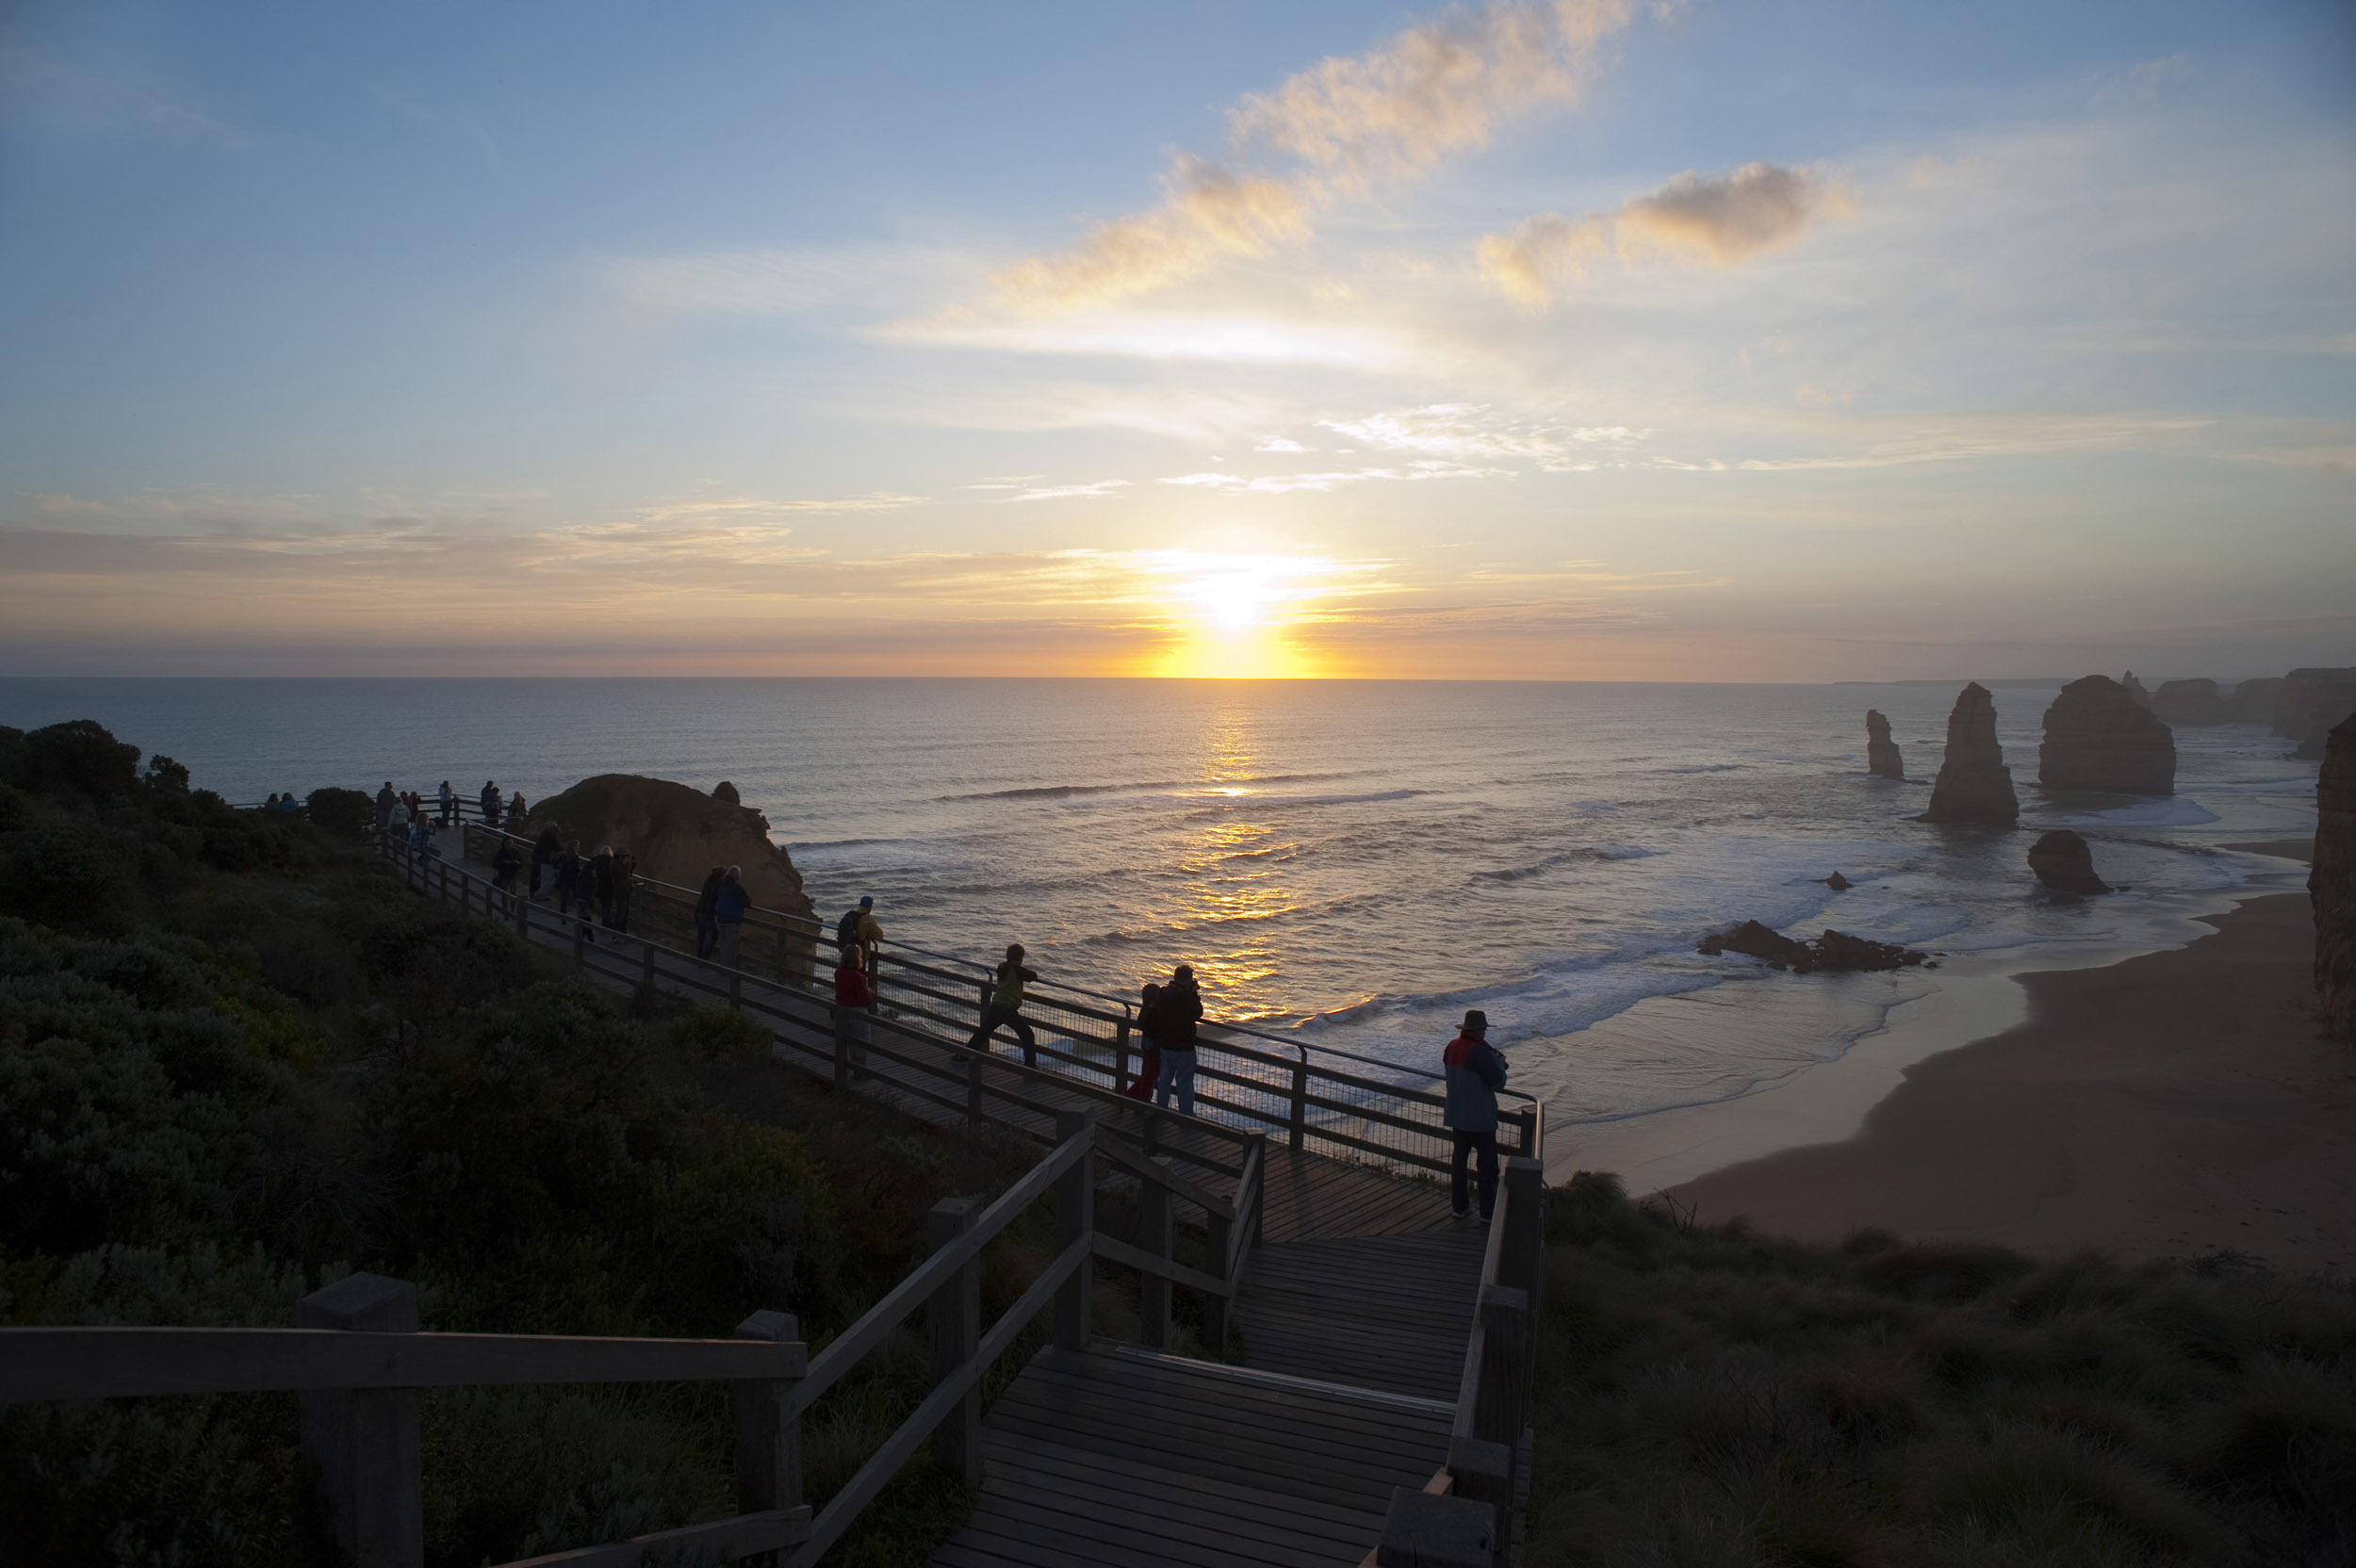 A beautiful hazy sunset over the ocean, coastline, viewing platform and the 12 Apostles on the Great Ocean Road in Australia.